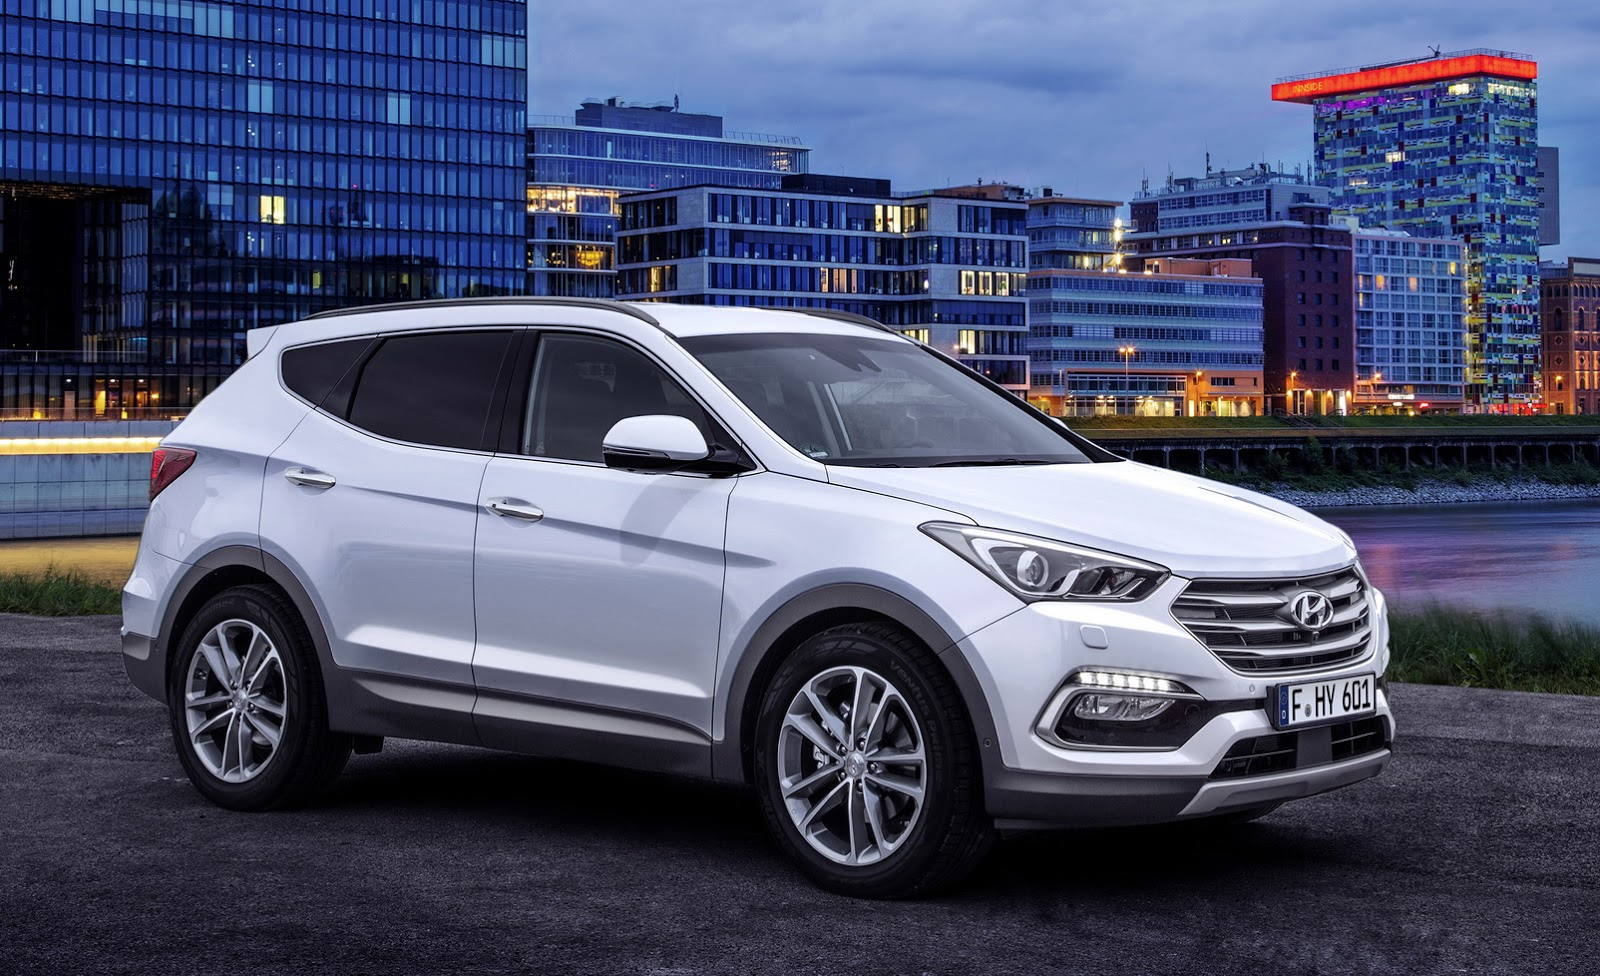 Hyundai To Expand Global Suv Line Up Bring New Small Full Size Models Autocar India